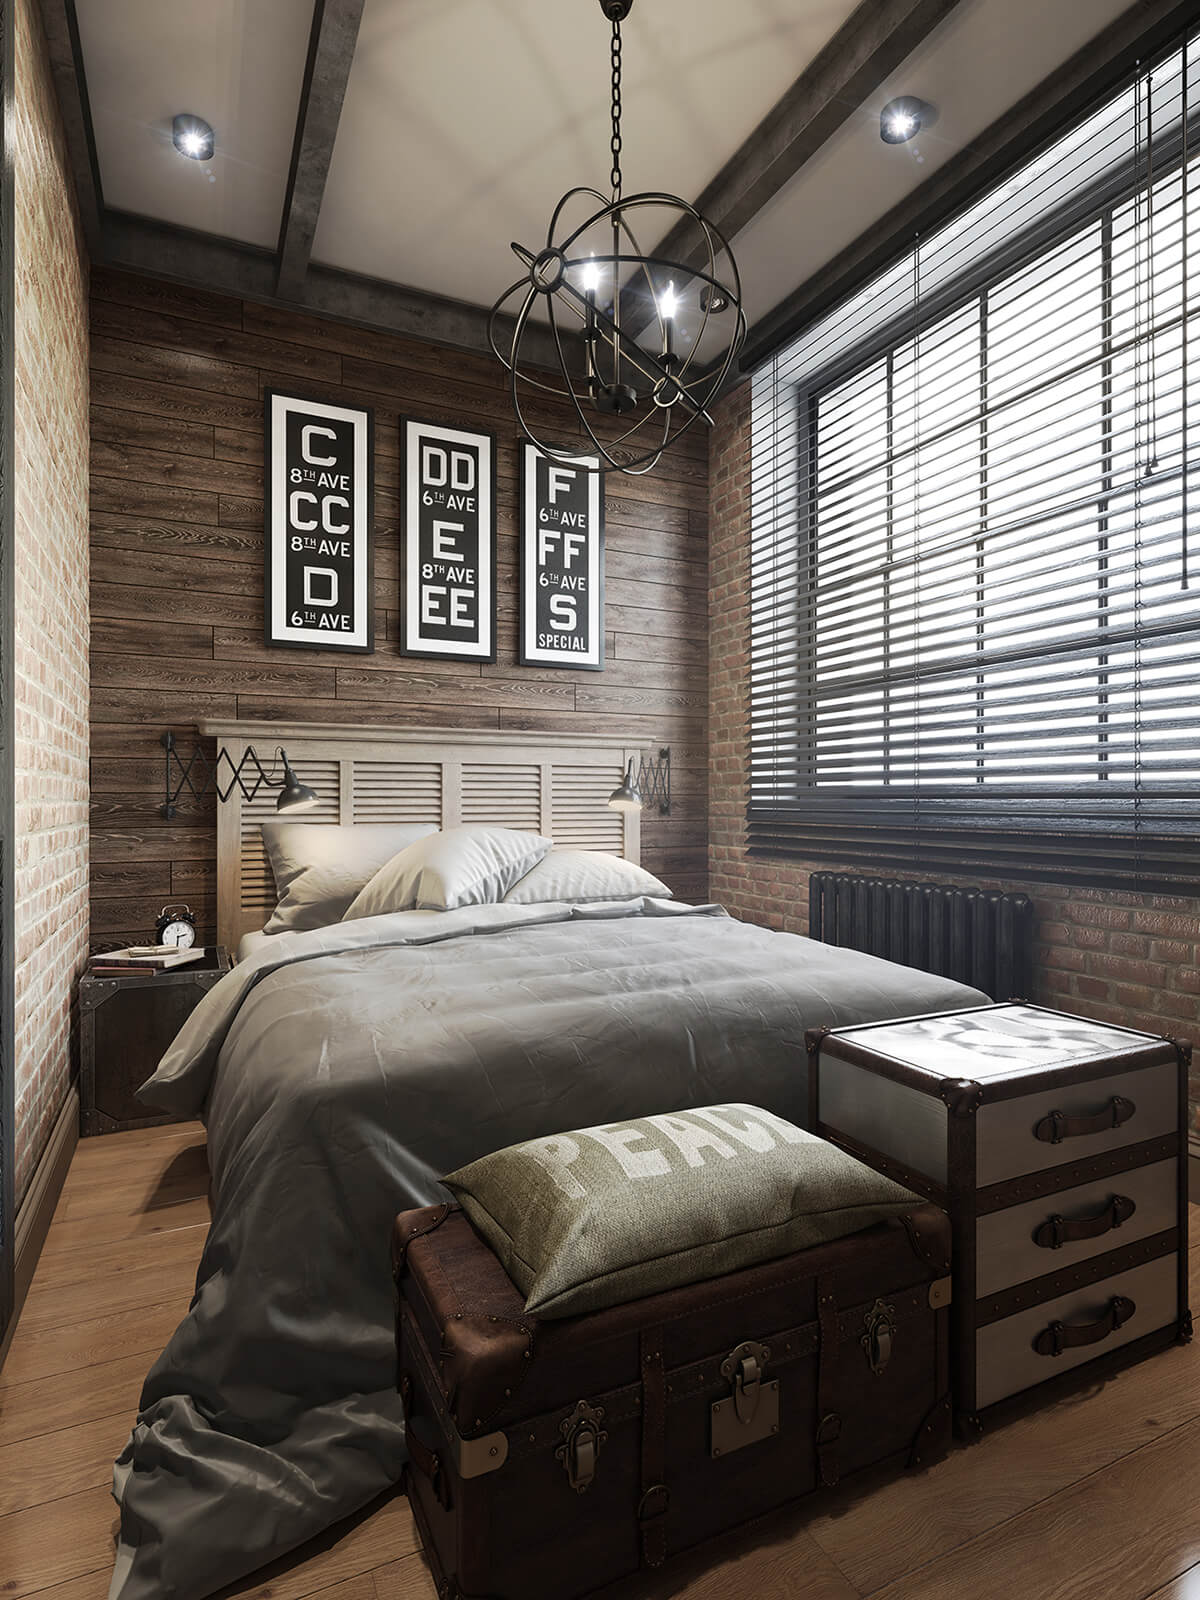 37 Best Small Bedroom Ideas and Designs for 2020 on Small Room Idea  id=73387